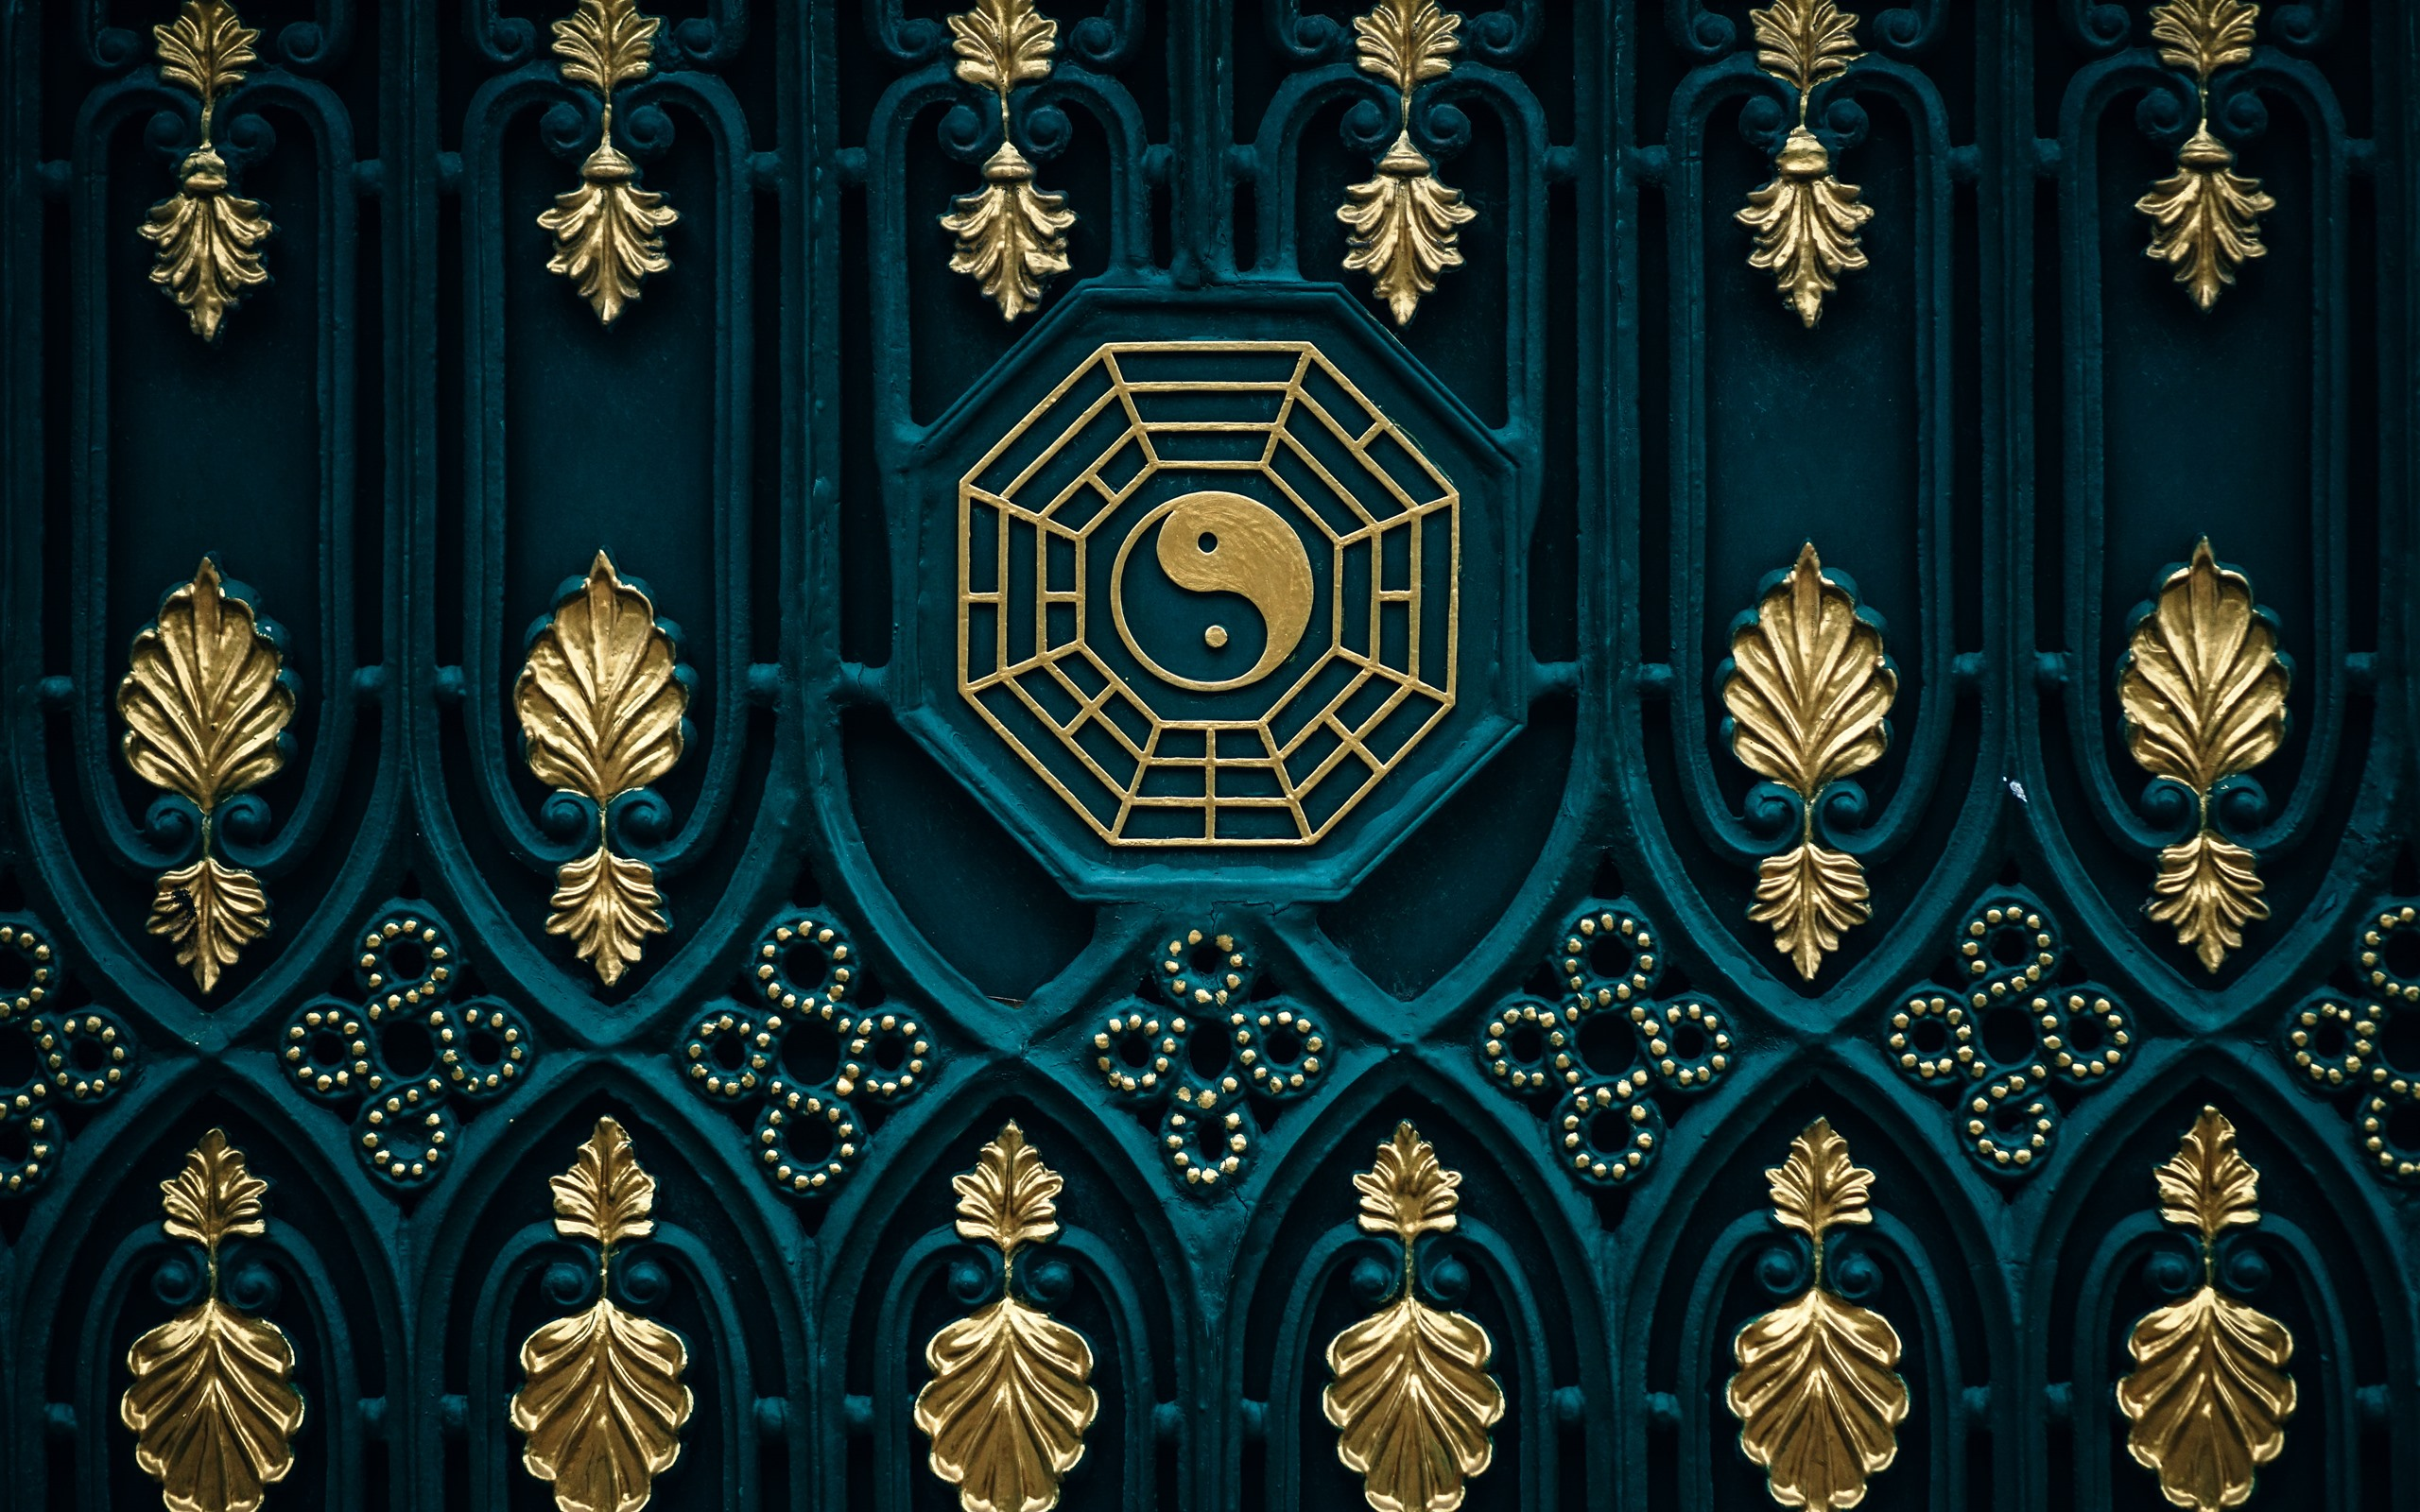 Wallpaper Bagua map yin yang door 5120x2880 UHD 5K Picture Image 2560x1600